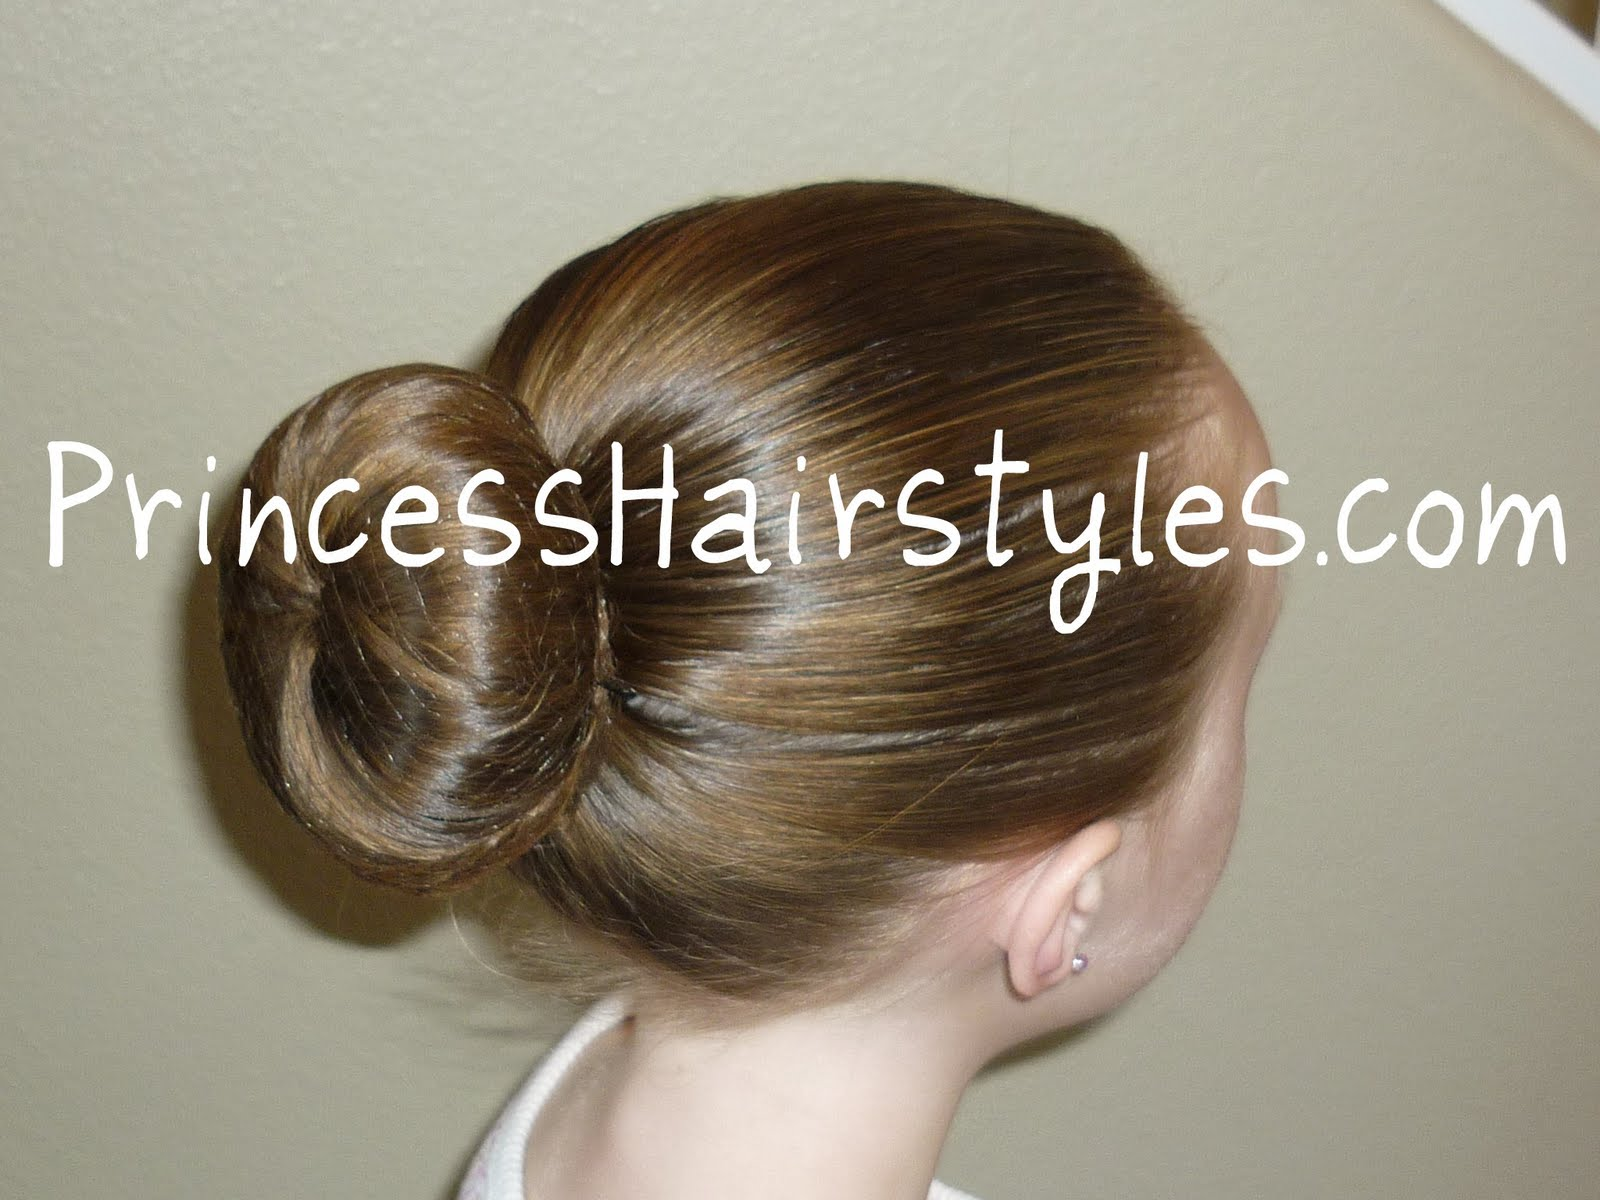 Astounding The Perfect Ballet Bun Hairstyles For Girls Princess Hairstyles Hairstyle Inspiration Daily Dogsangcom